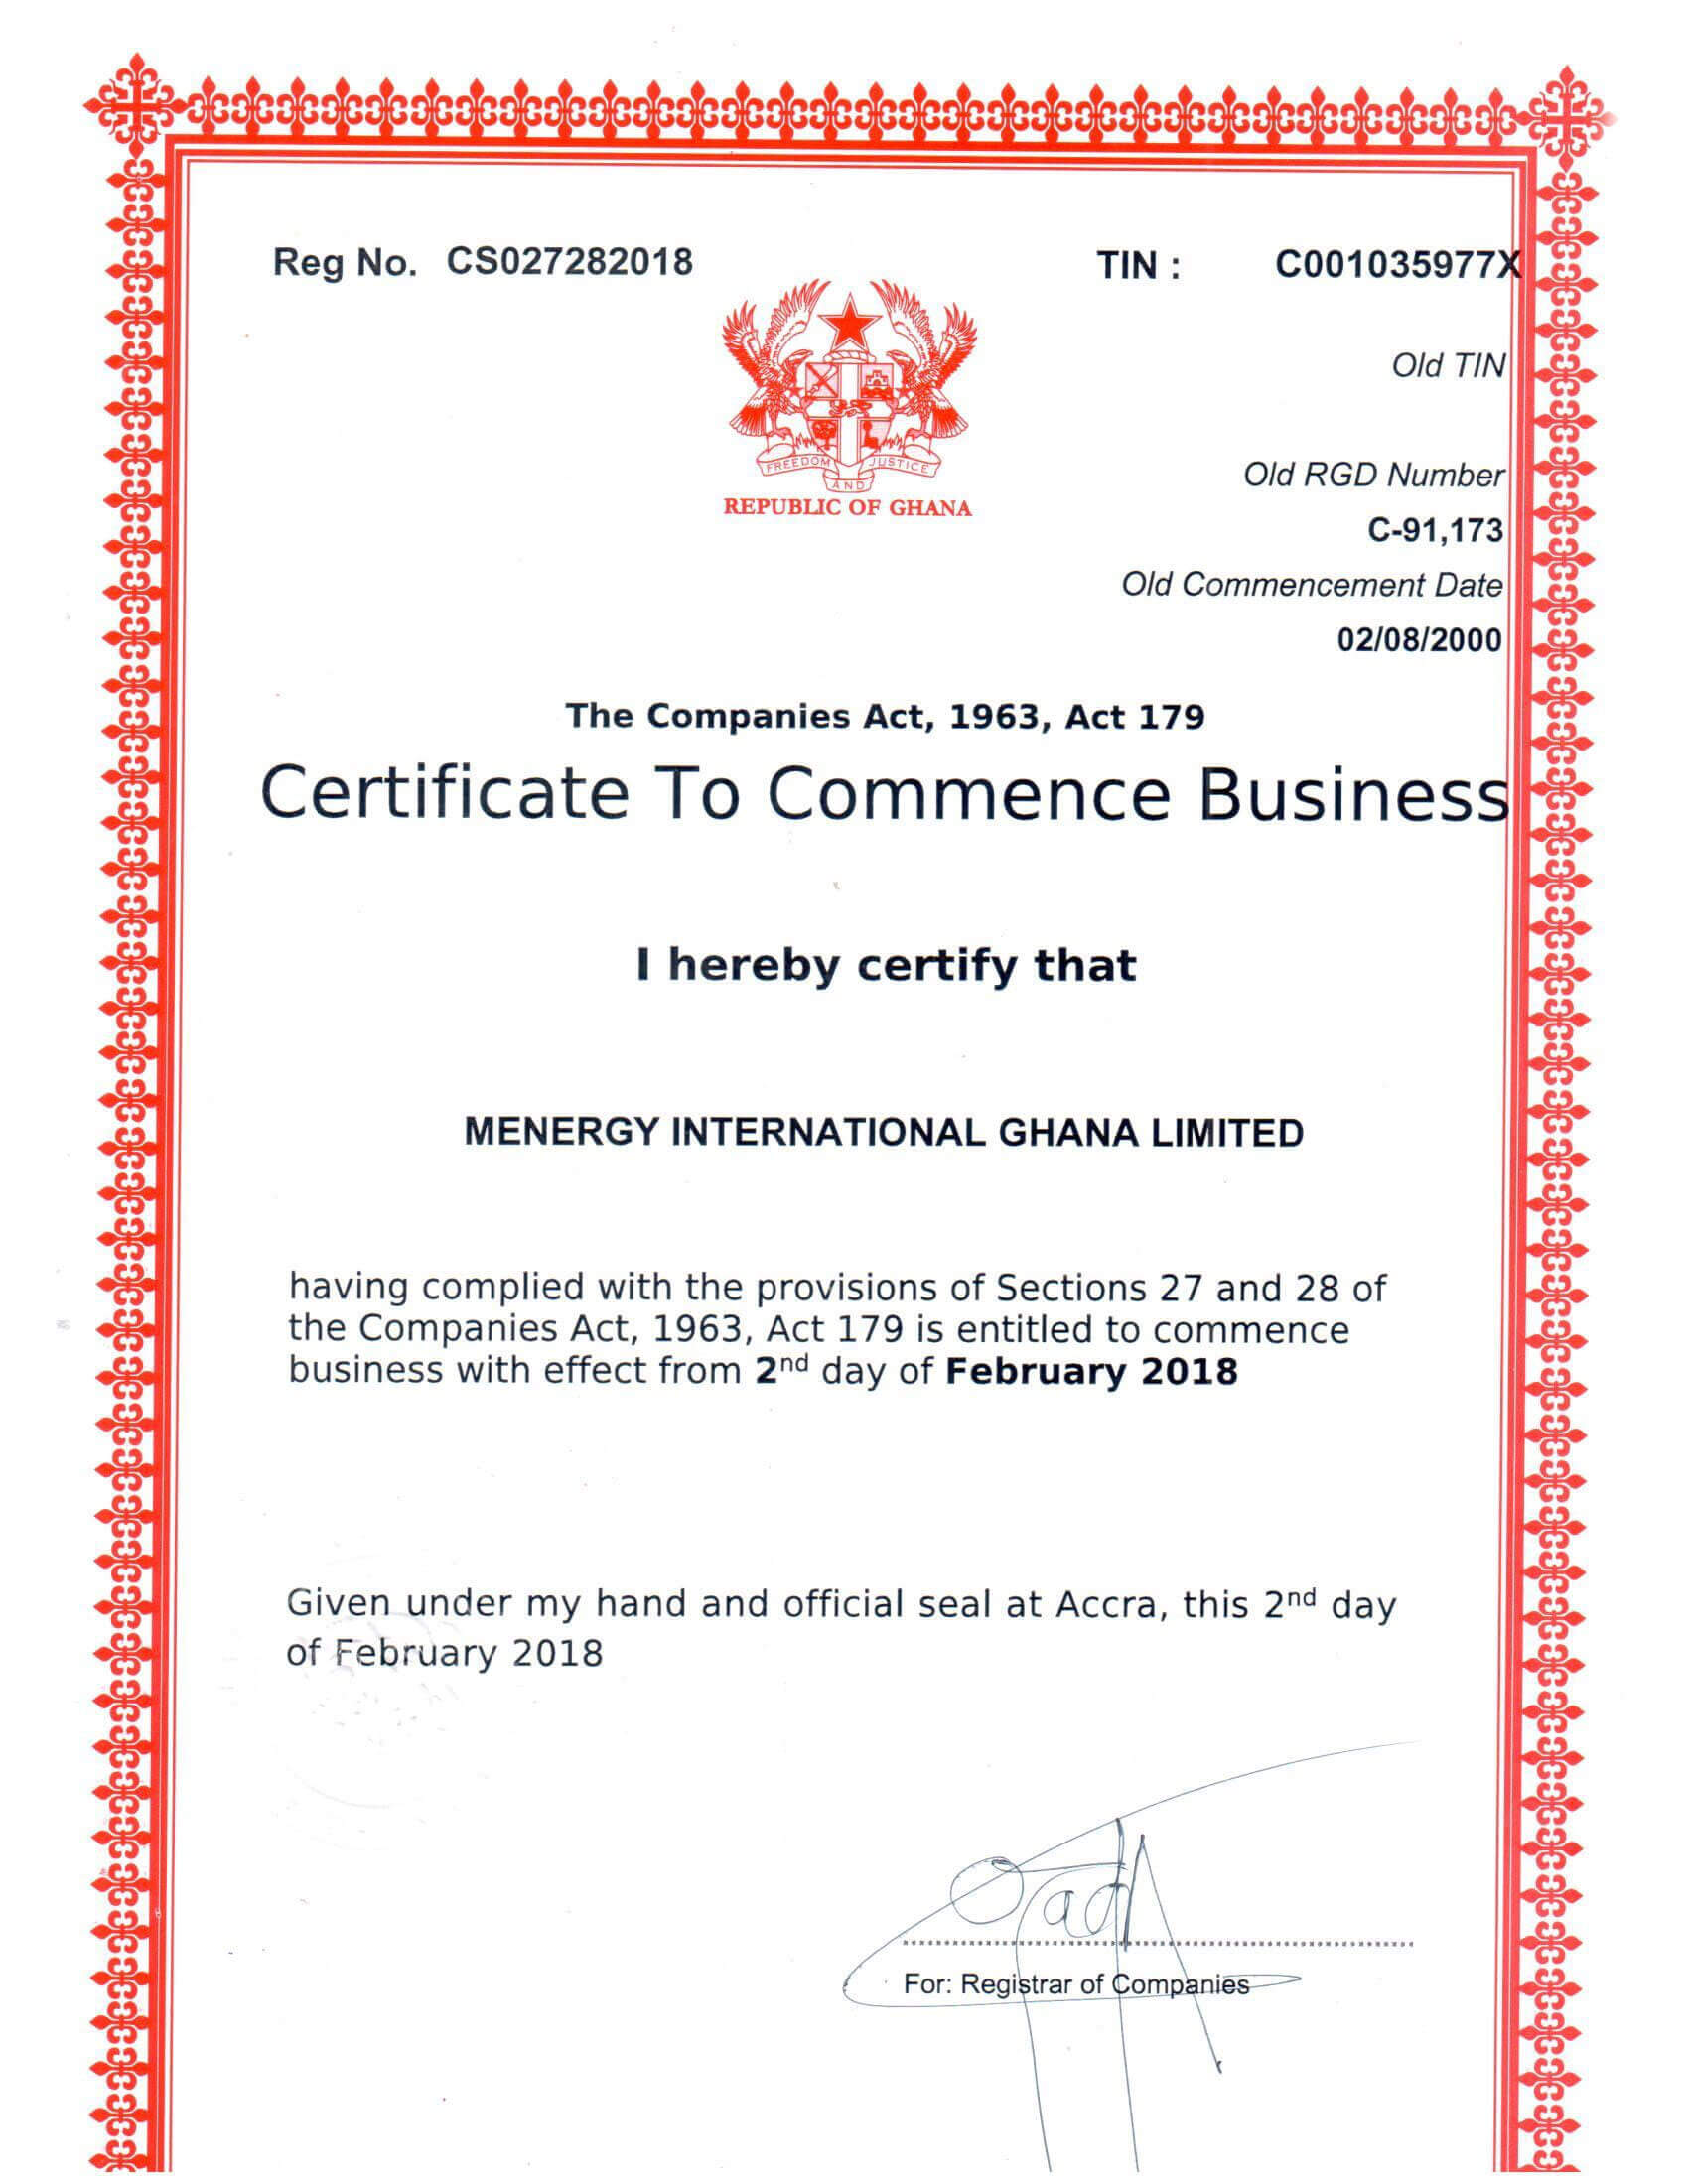 Cert-to-commence-business-1_2